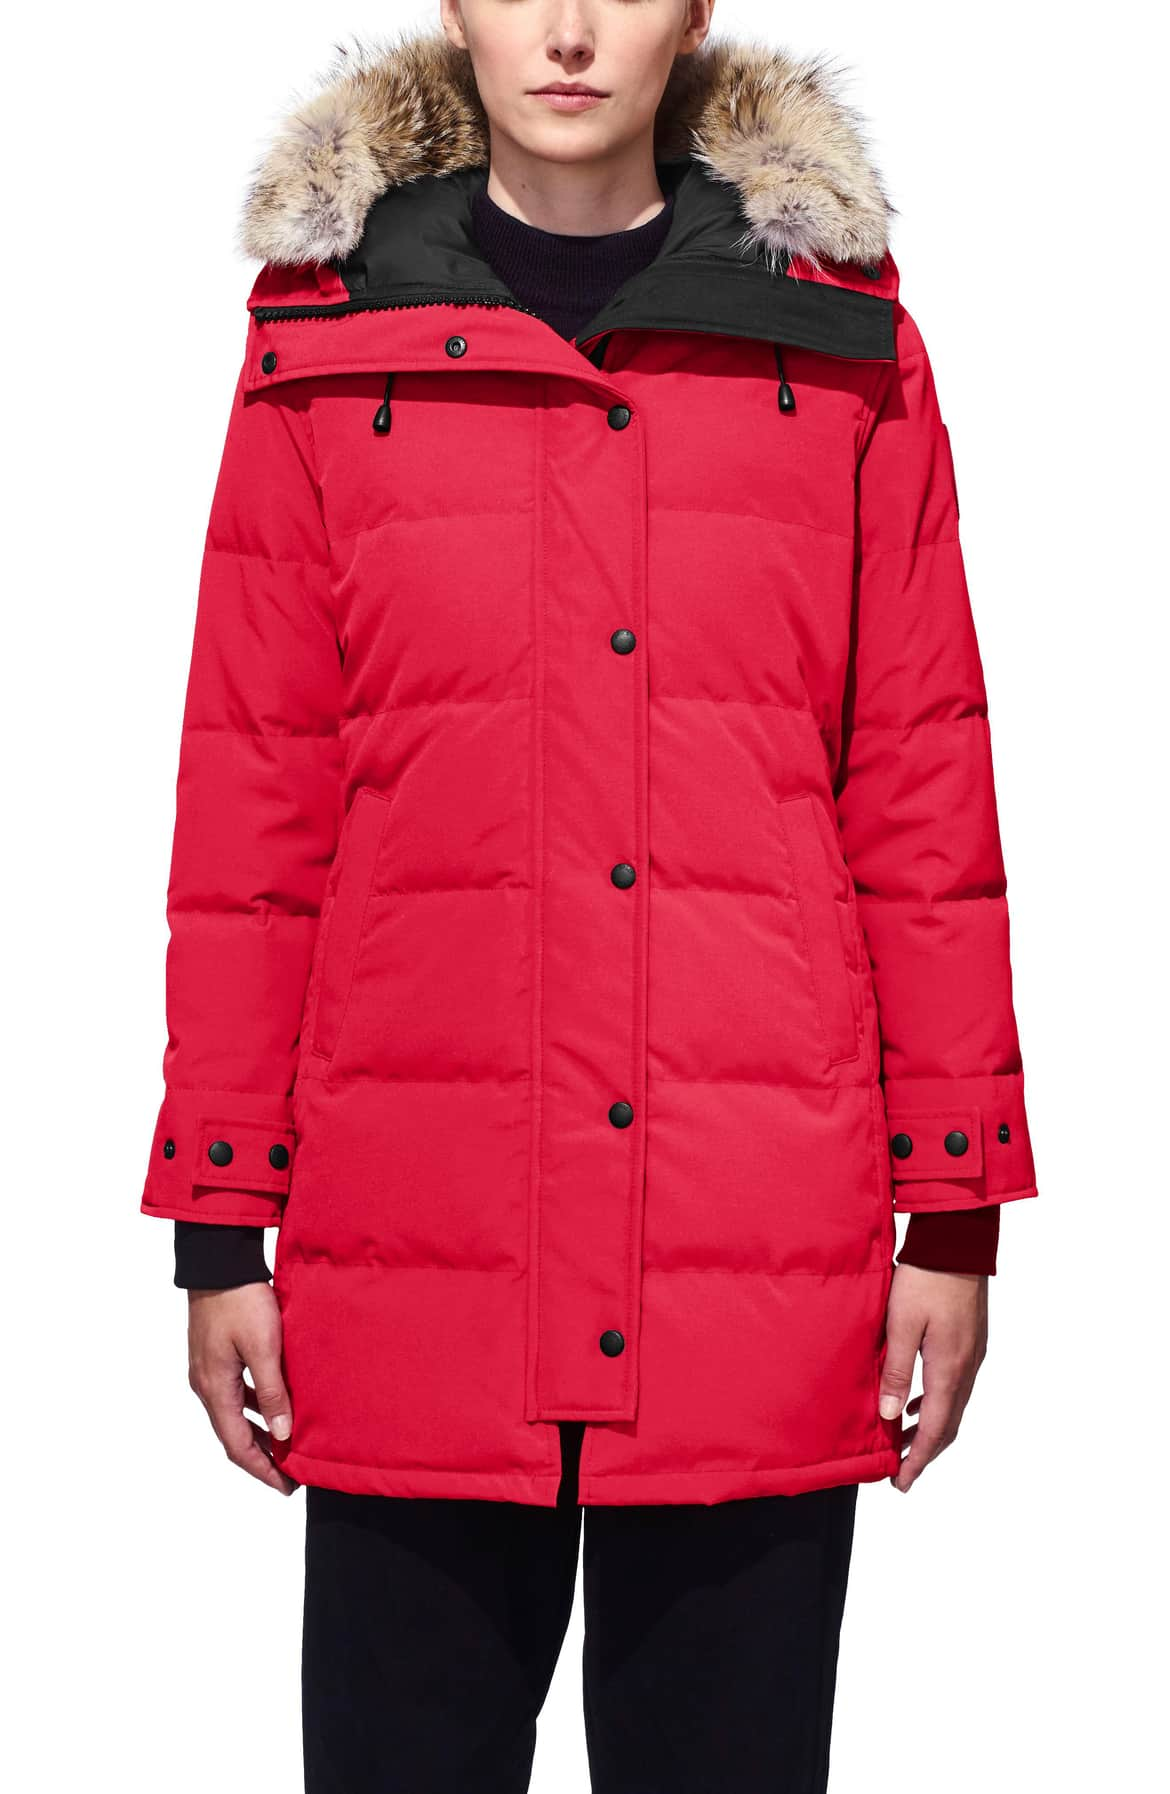 <p>Designed to stand up to frigid temperatures, a rugged parka goes uptown-stylish in a slim, mid-thigh-length silhouette.{&amp;nbsp;}$925.00 (Image: Nordstrom){&amp;nbsp;}</p><p></p>